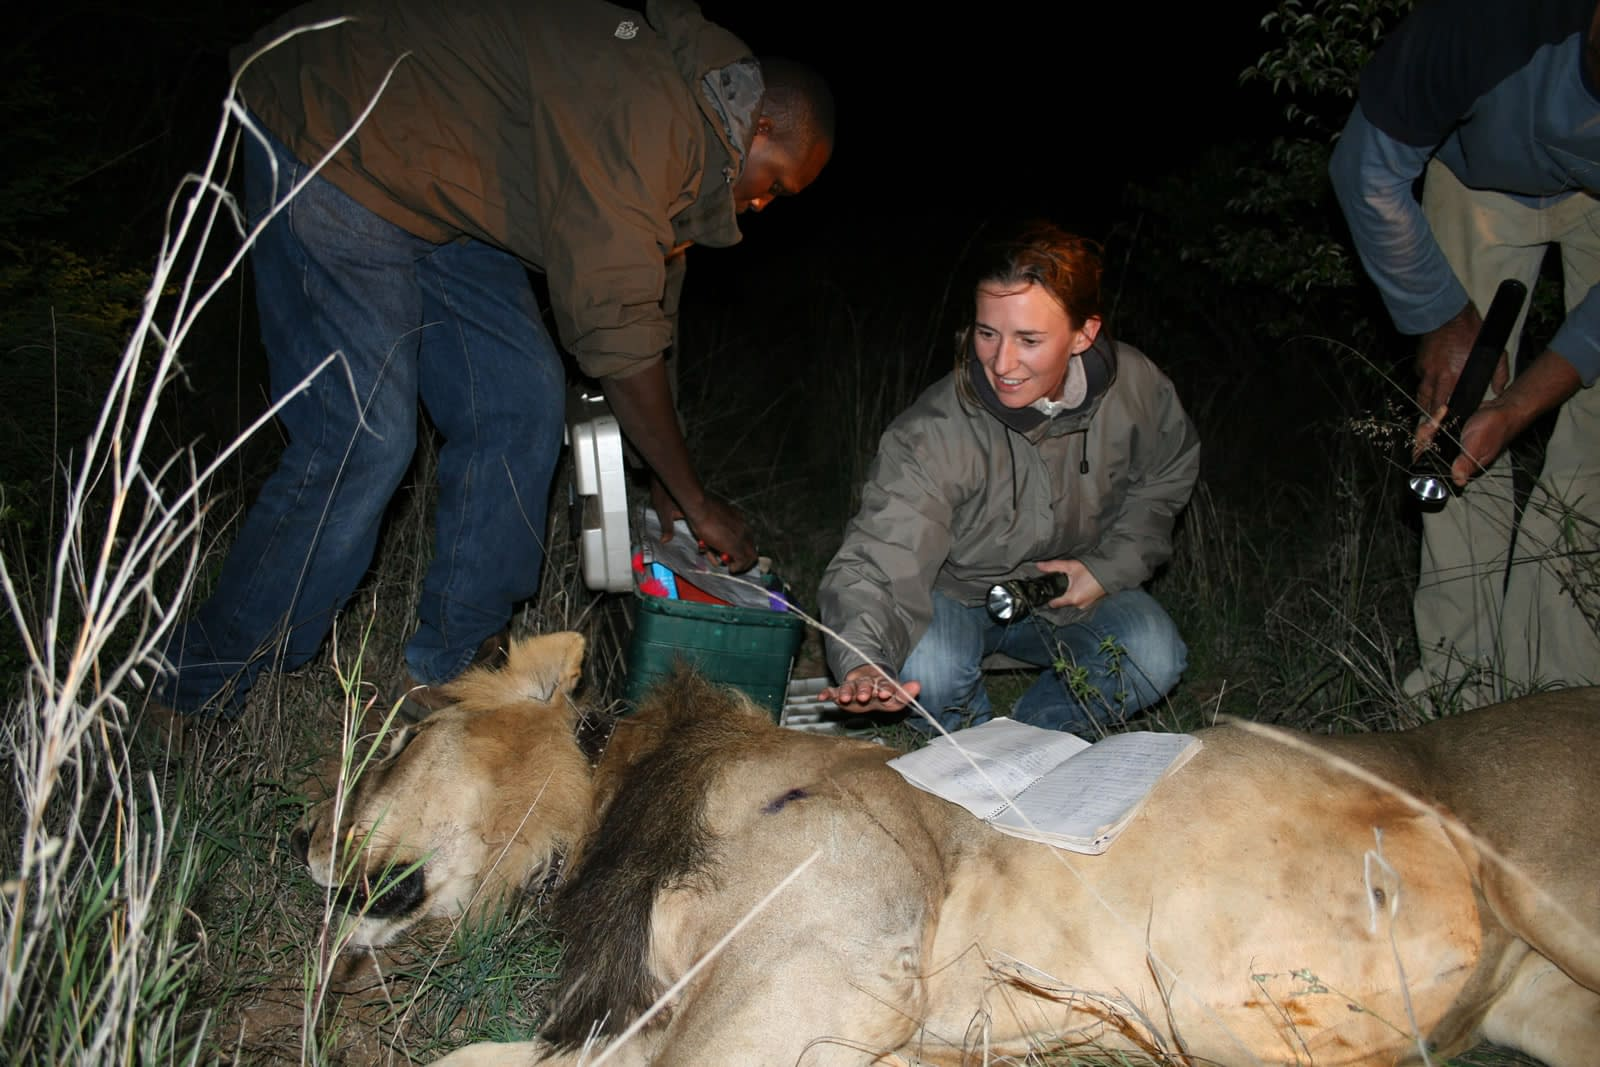 Conservation team collaring a sedated lion at nightime